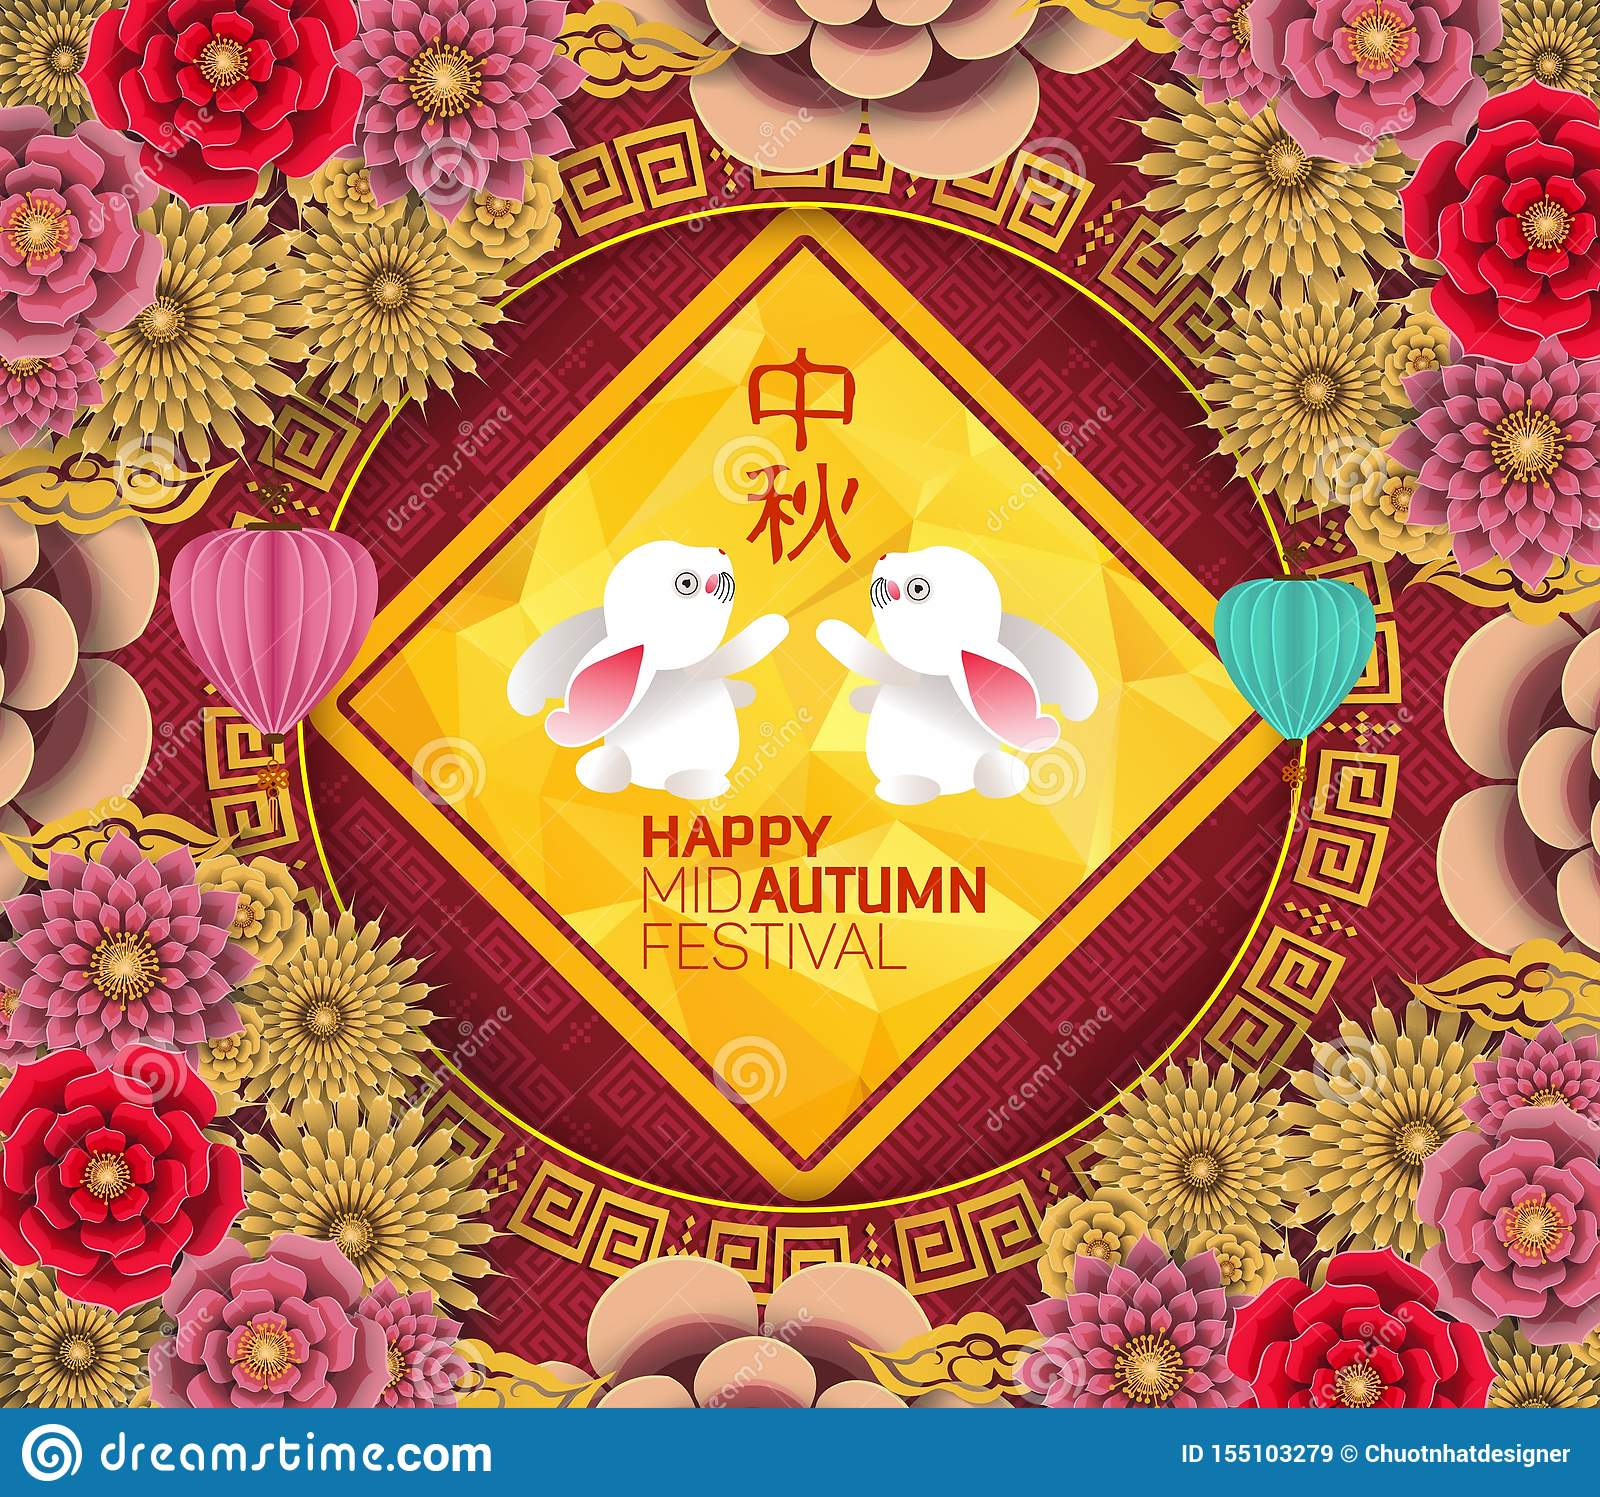 Mid Autumn Festival In Paper Art Style With Its Chinese